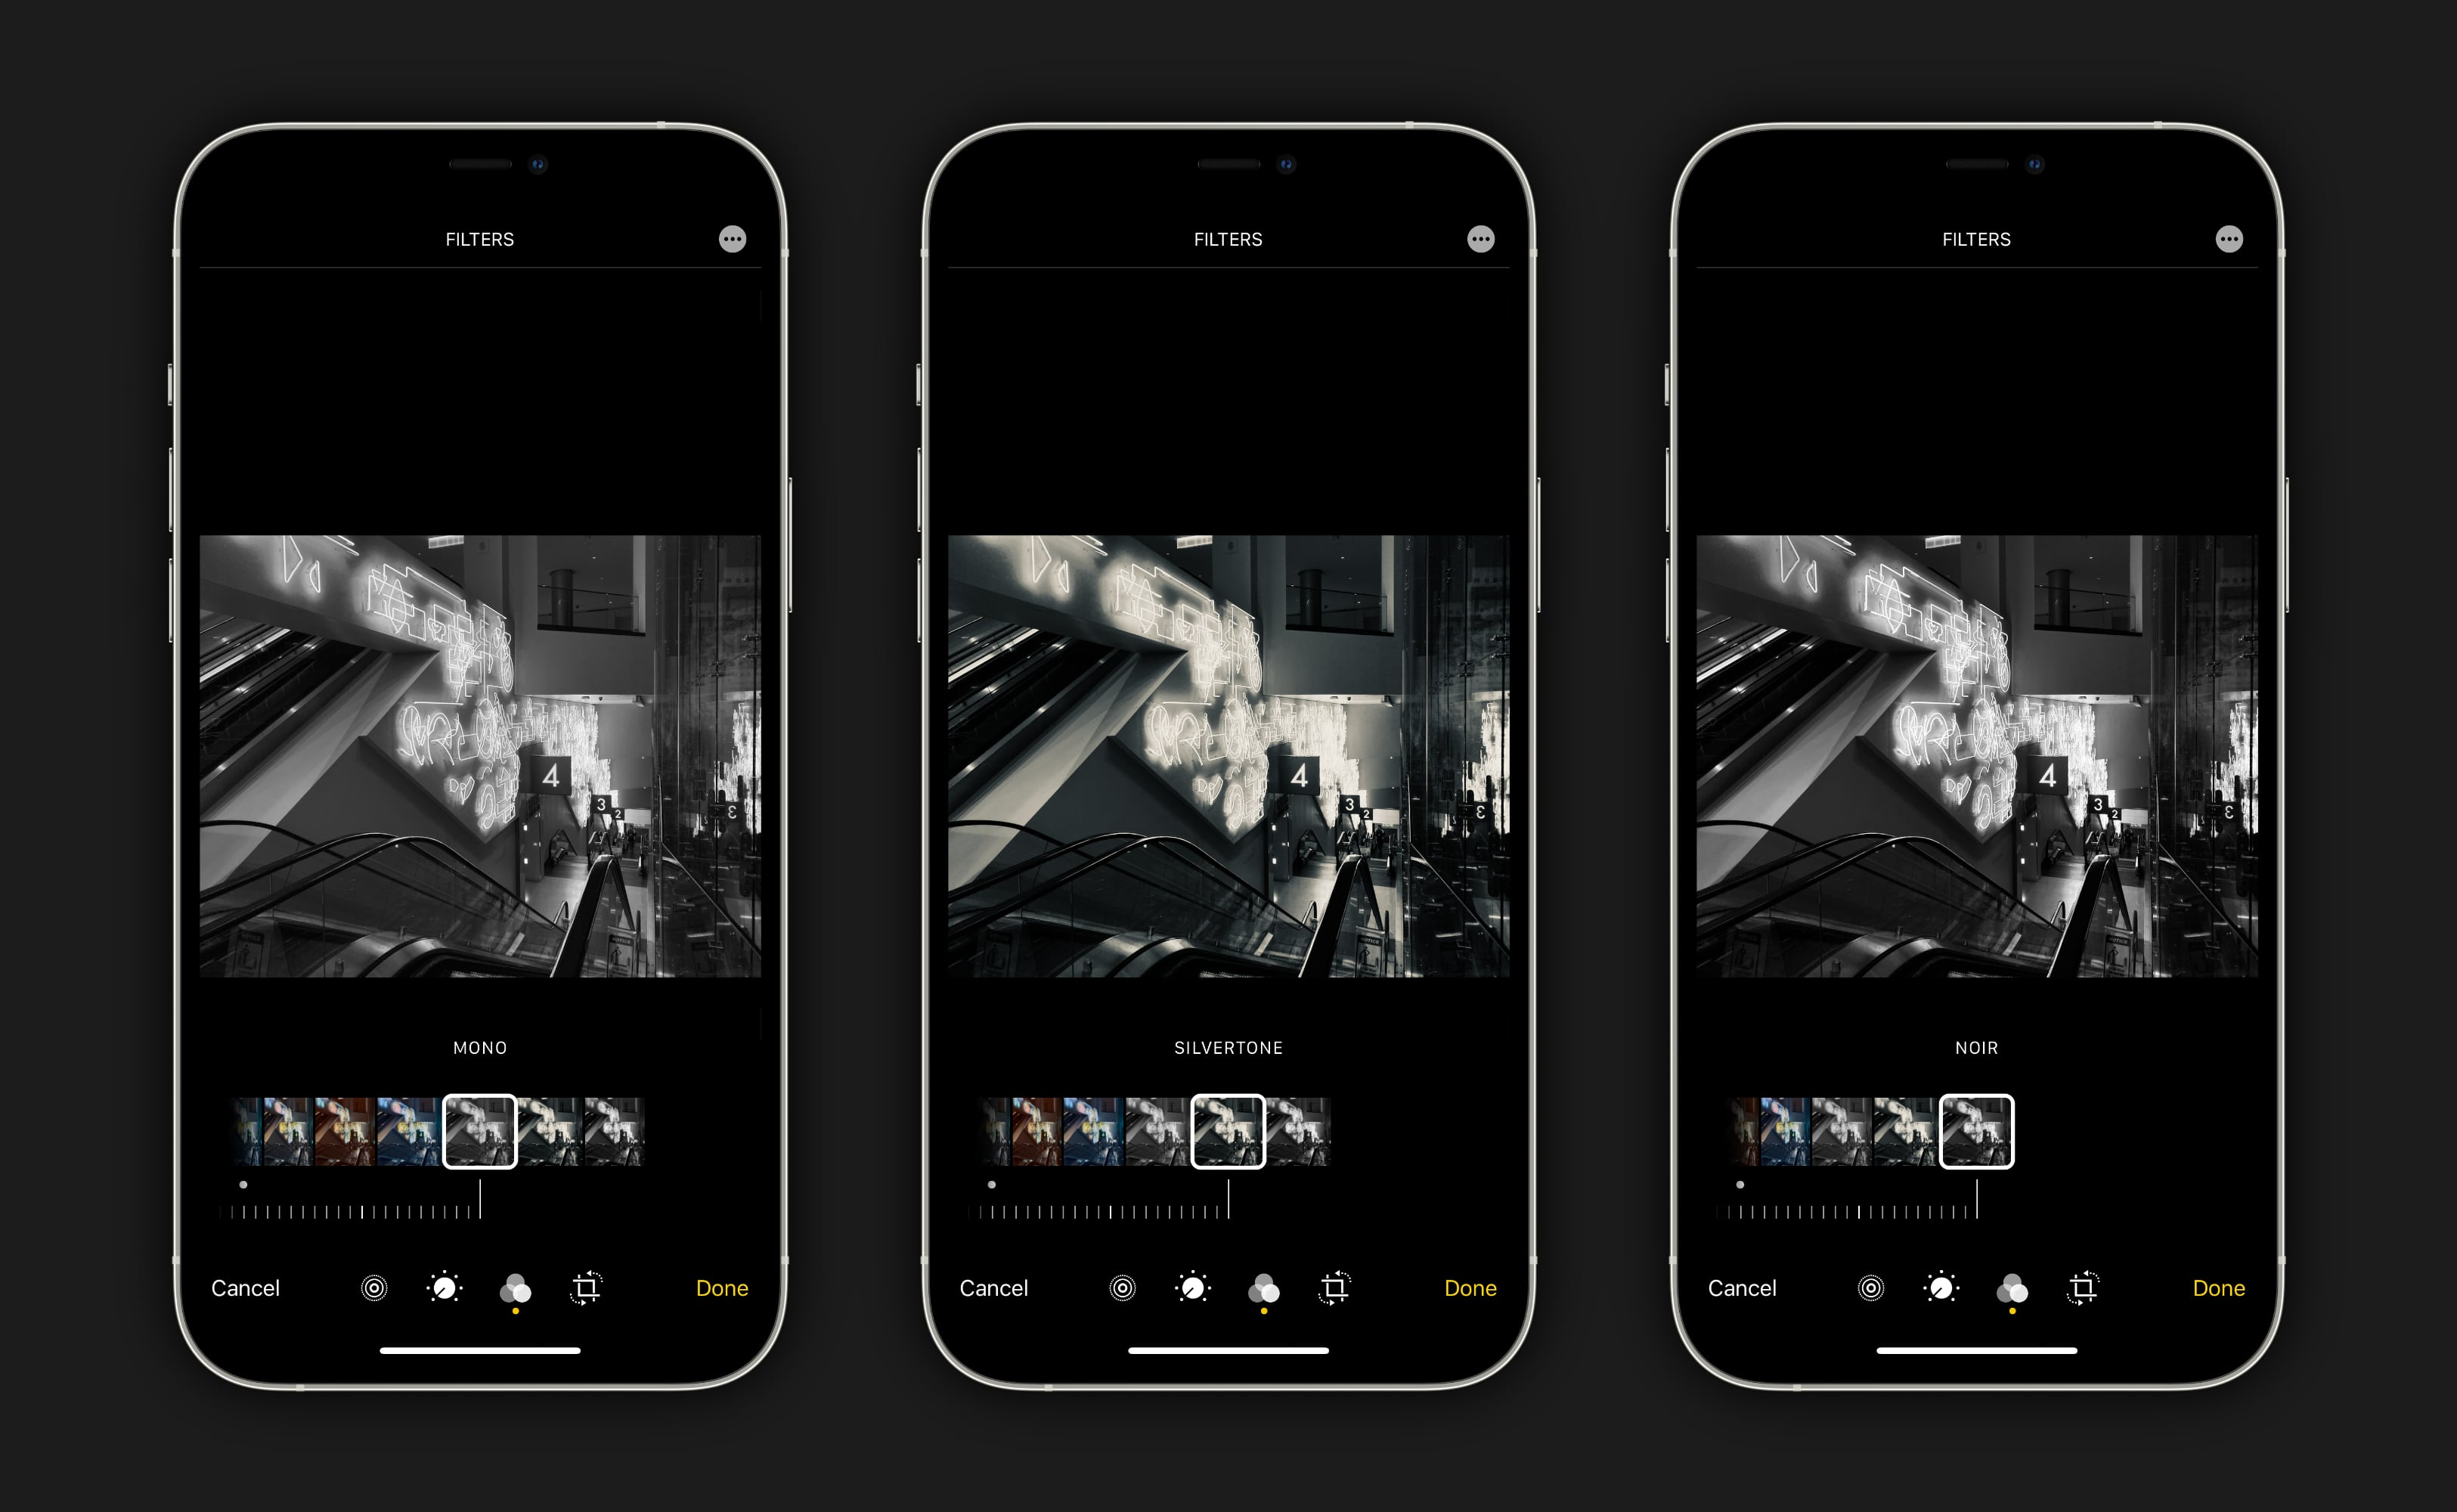 Edit your photo in the Photos app and tap the filters button.